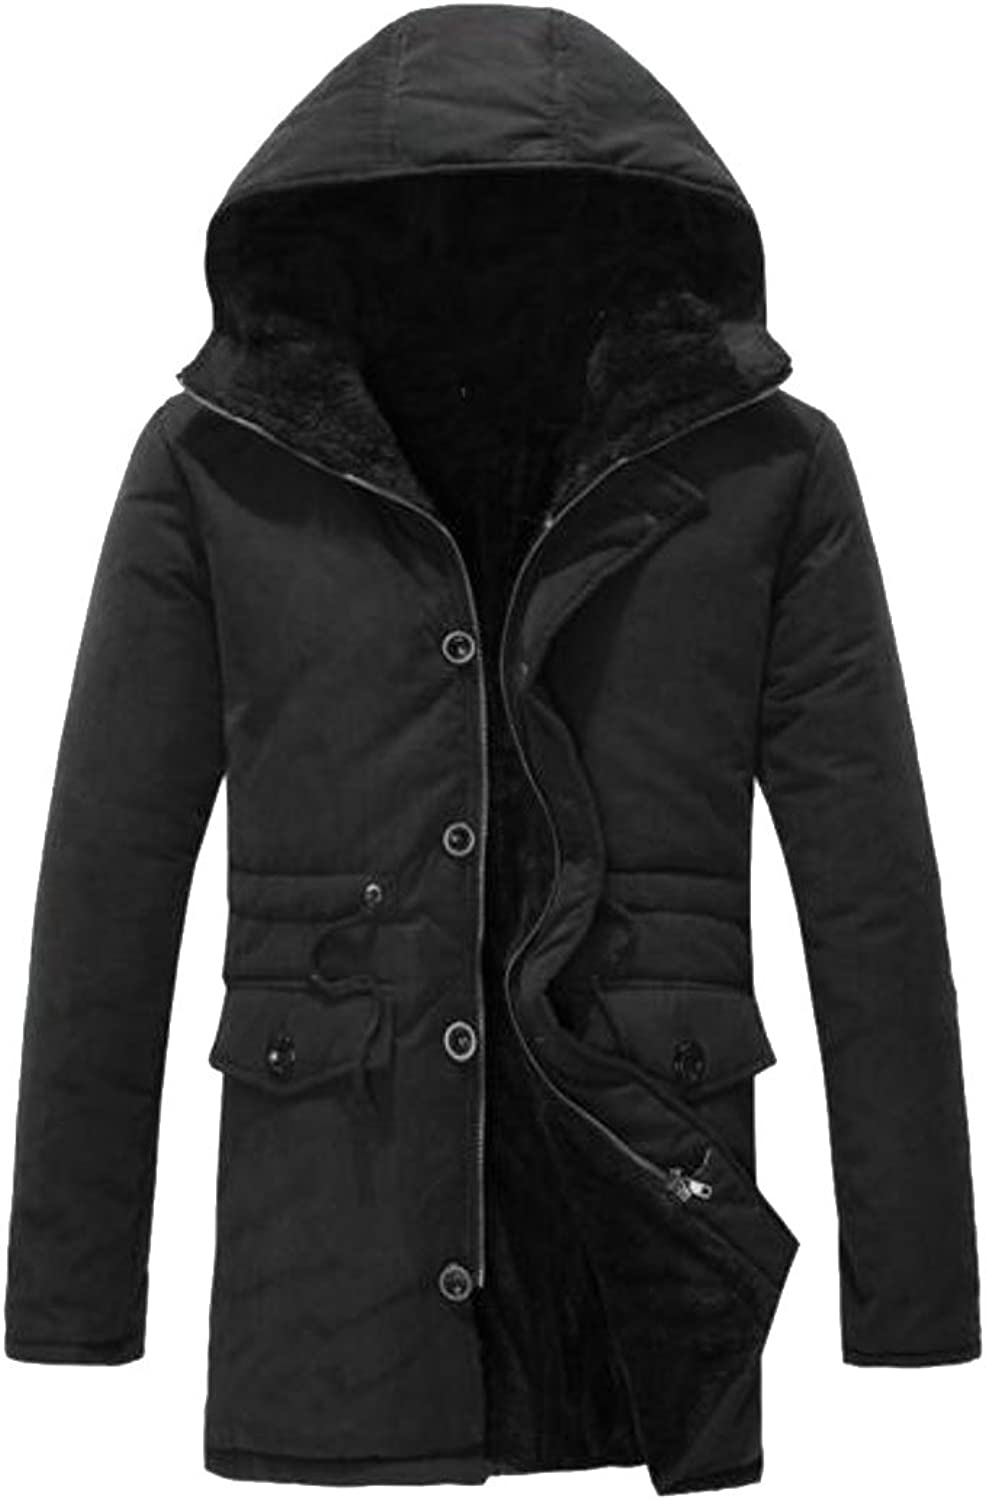 ARRIVE GUIDE Mens Fleece Lined Hooded Loose Fit Warm Thick Jacket Parka Overcoat